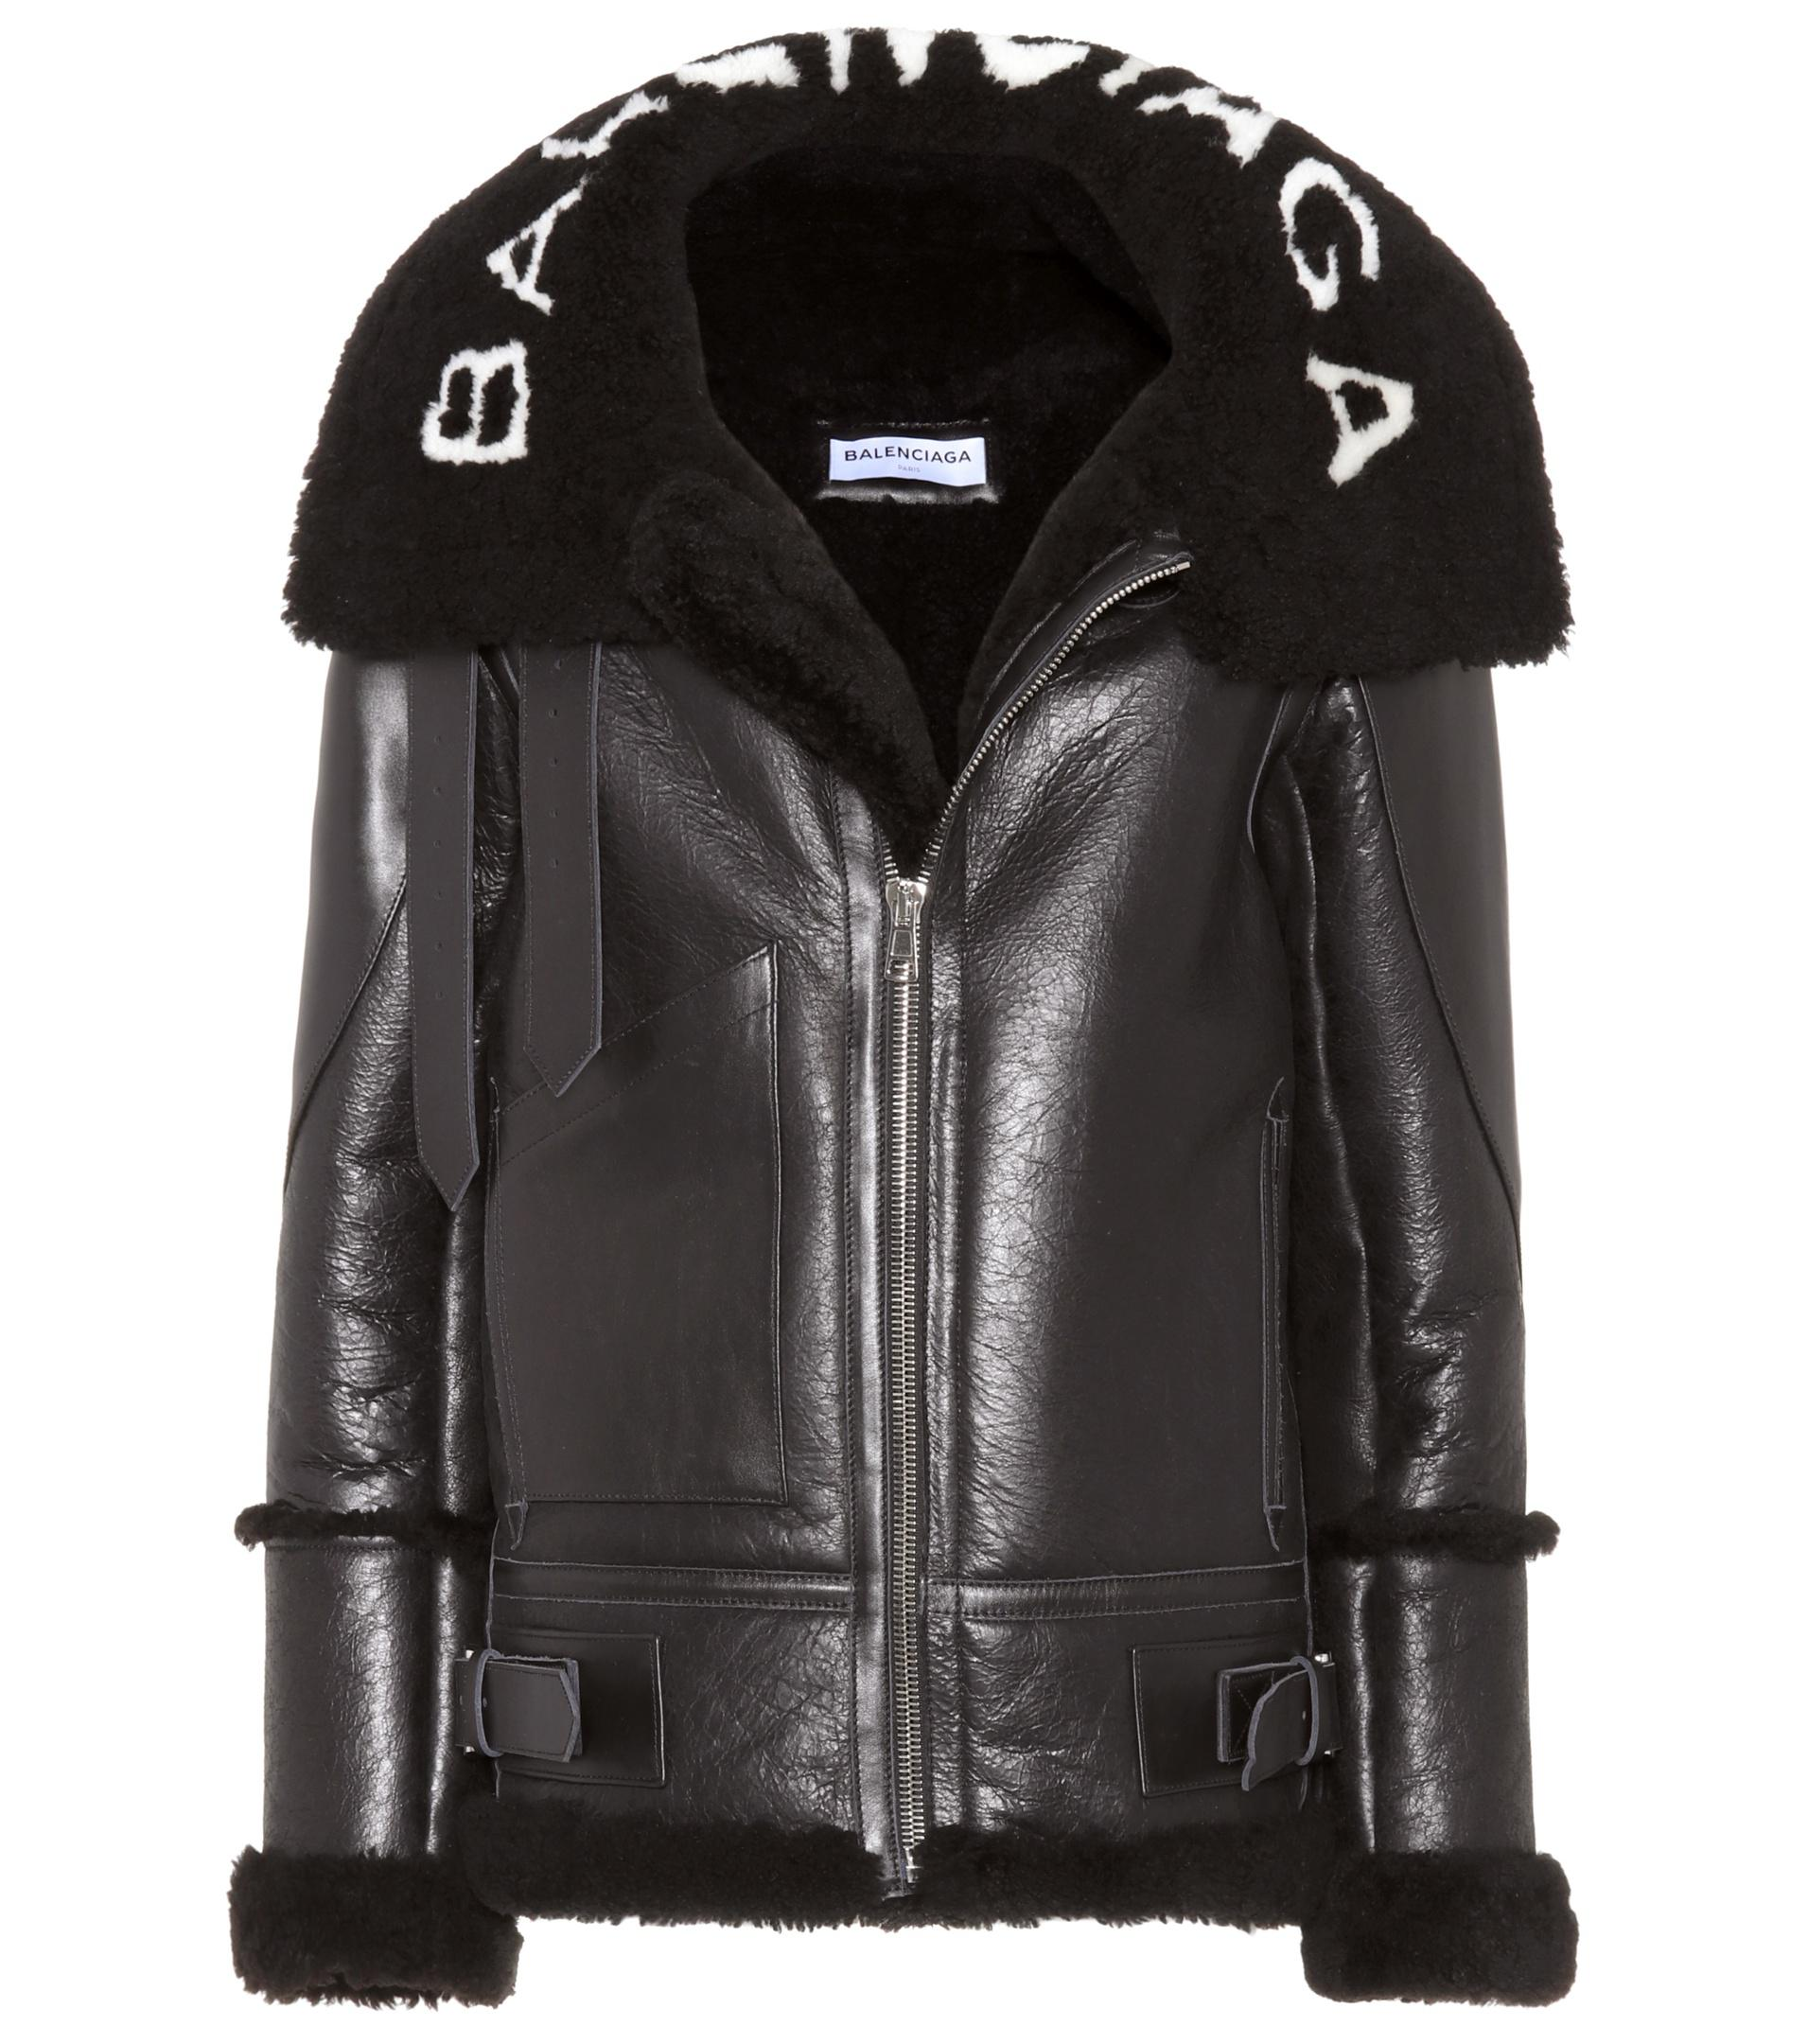 74245b2bdecdd Lyst - Balenciaga Leather Shearling-lined Jacket in Black